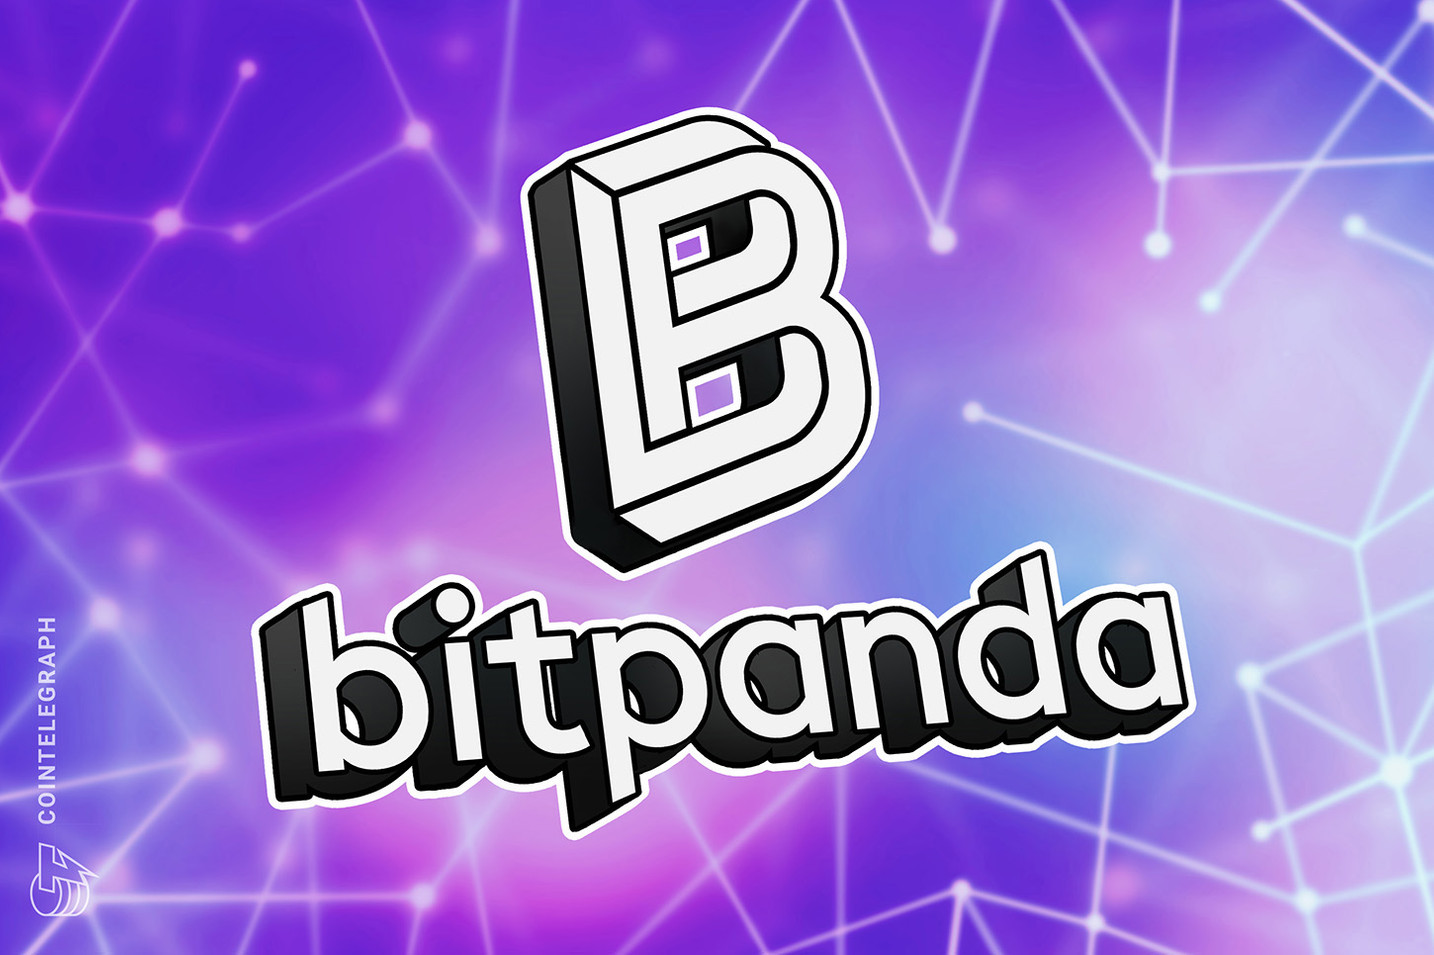 Bitpanda announces Series-B extension to build institutional offerings